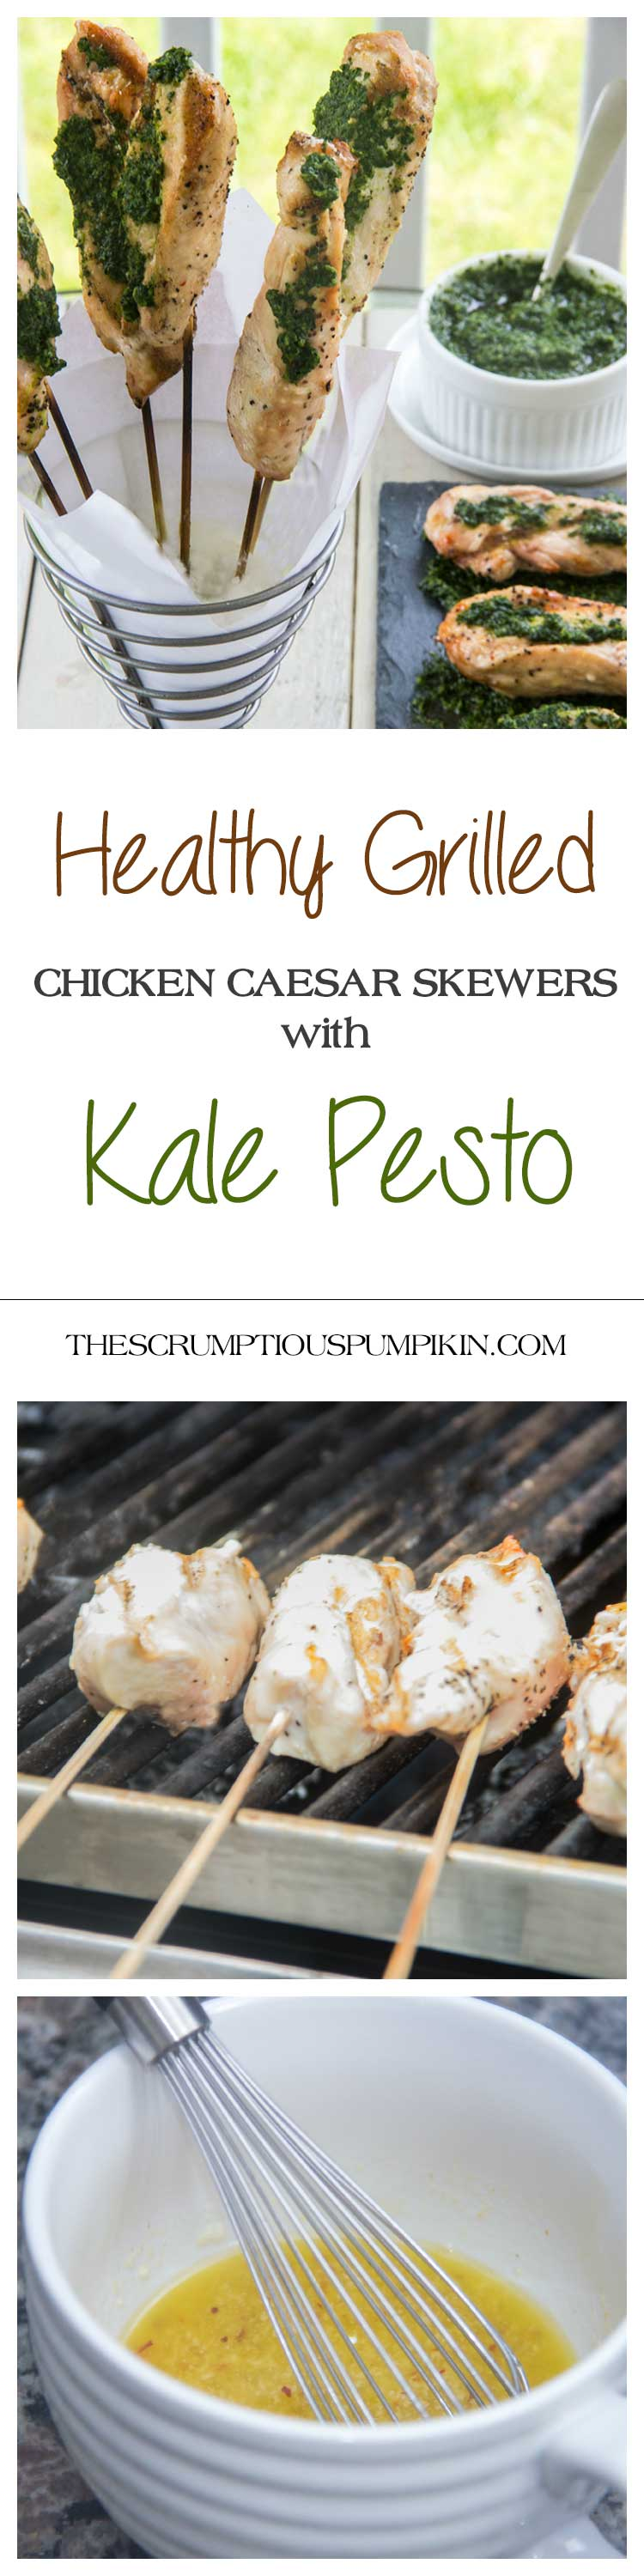 Healthy-Grilled-Chicken-Caesar-Skewers-with-Kale-Pesto